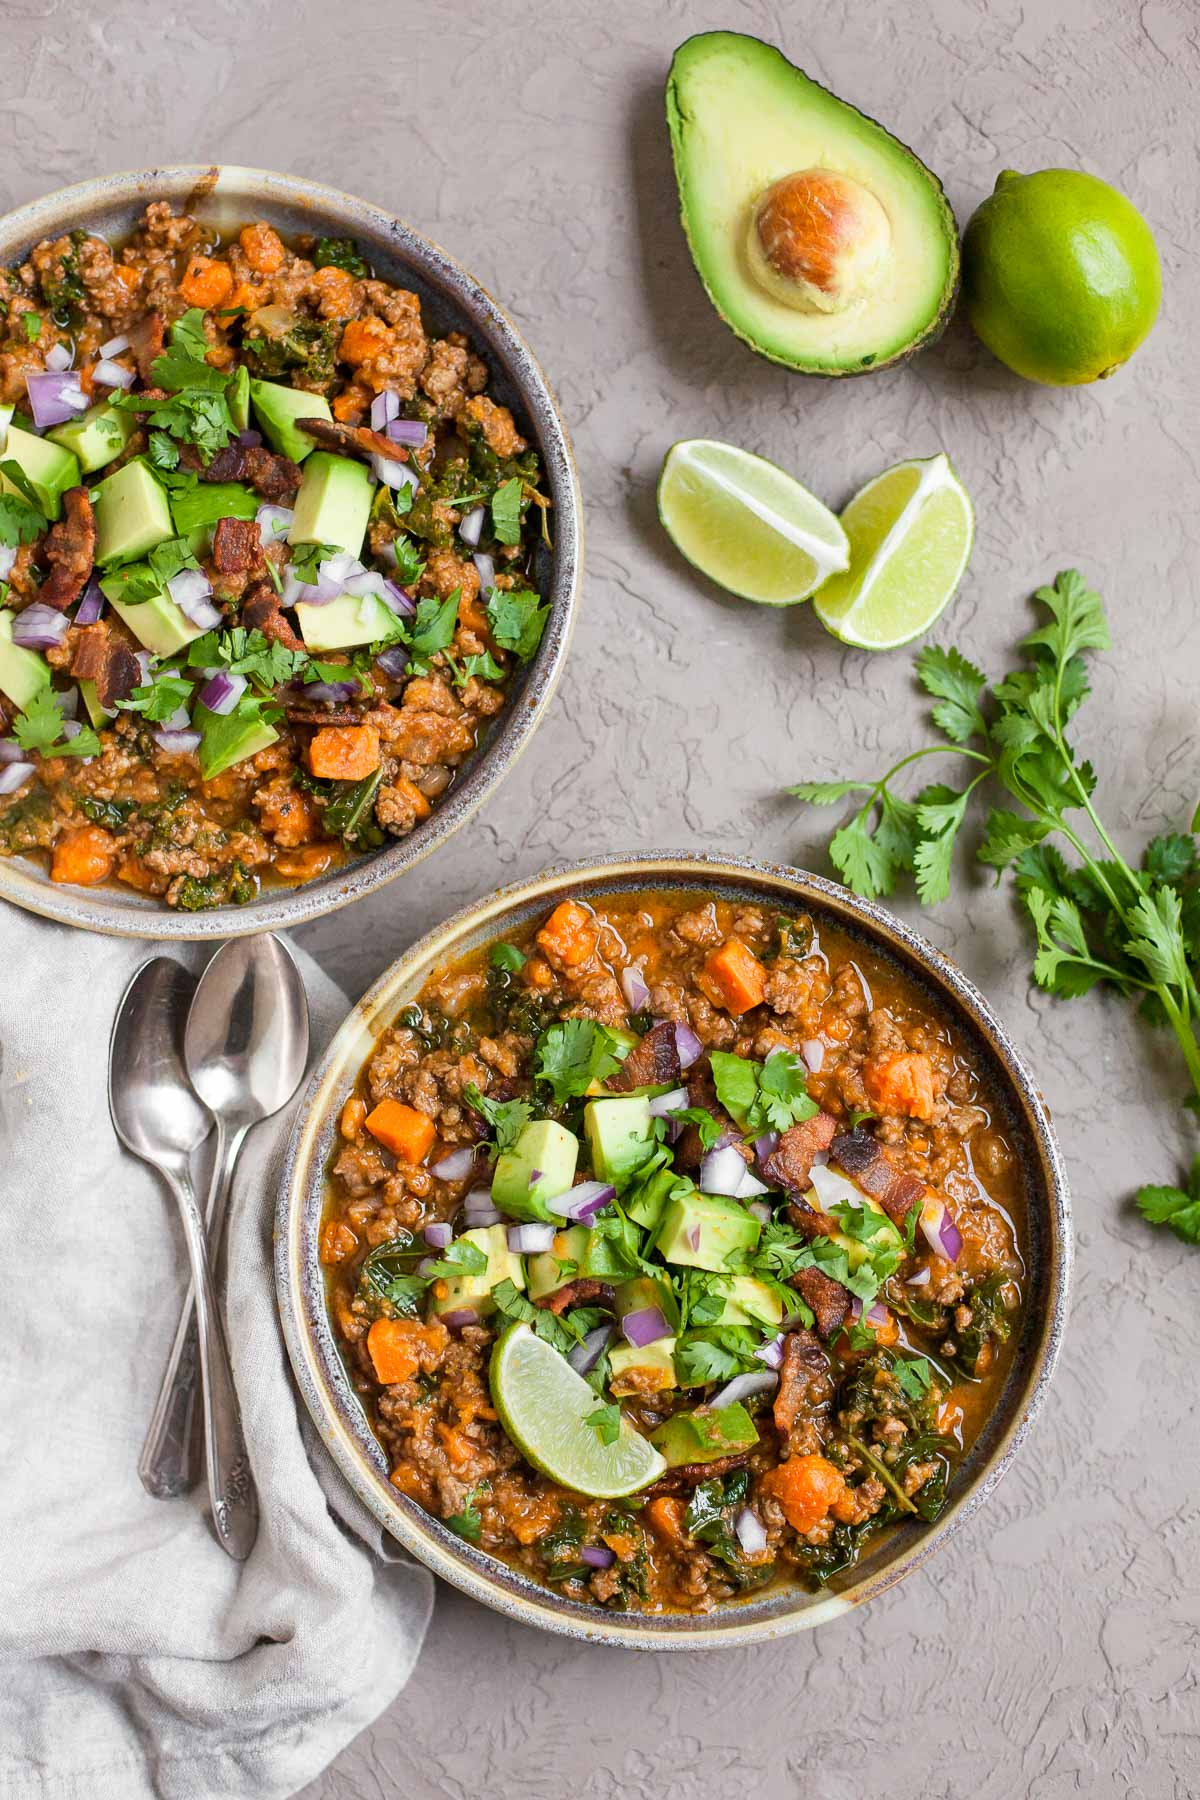 Instant Pot Bacon & Sweet Potato Chili (Paleo, Whole30)